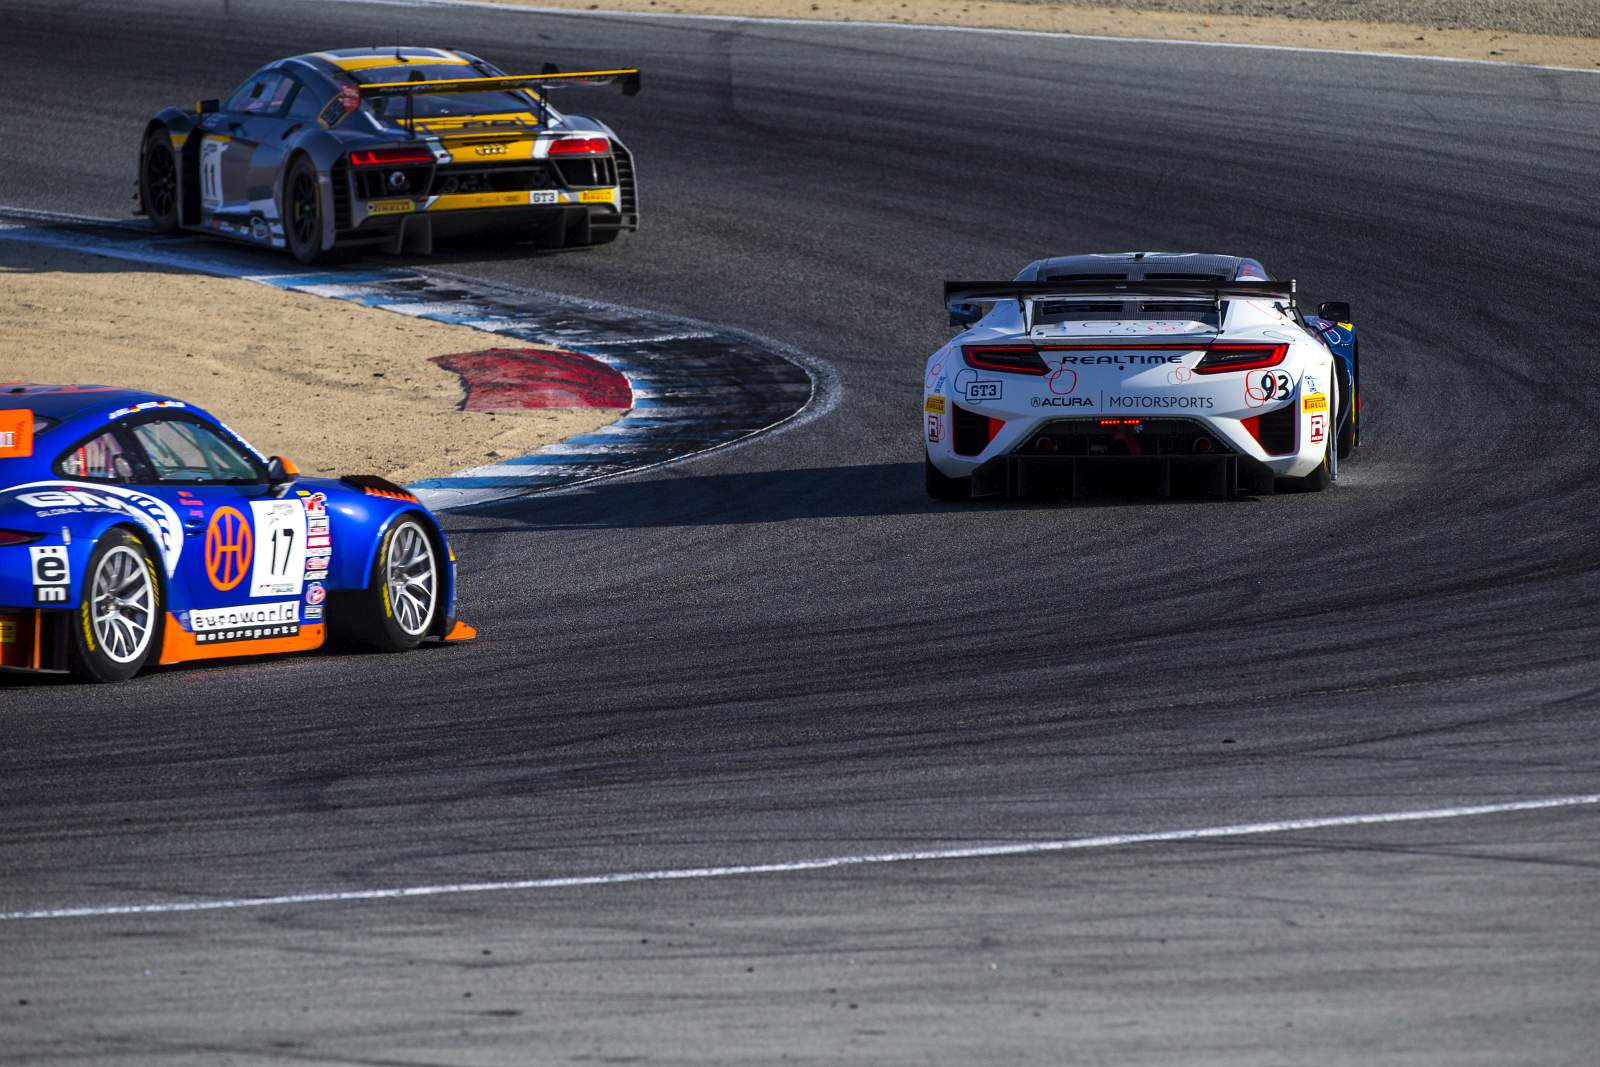 peter-kox-realtime-racing-pirelli-world-challenge-california-030